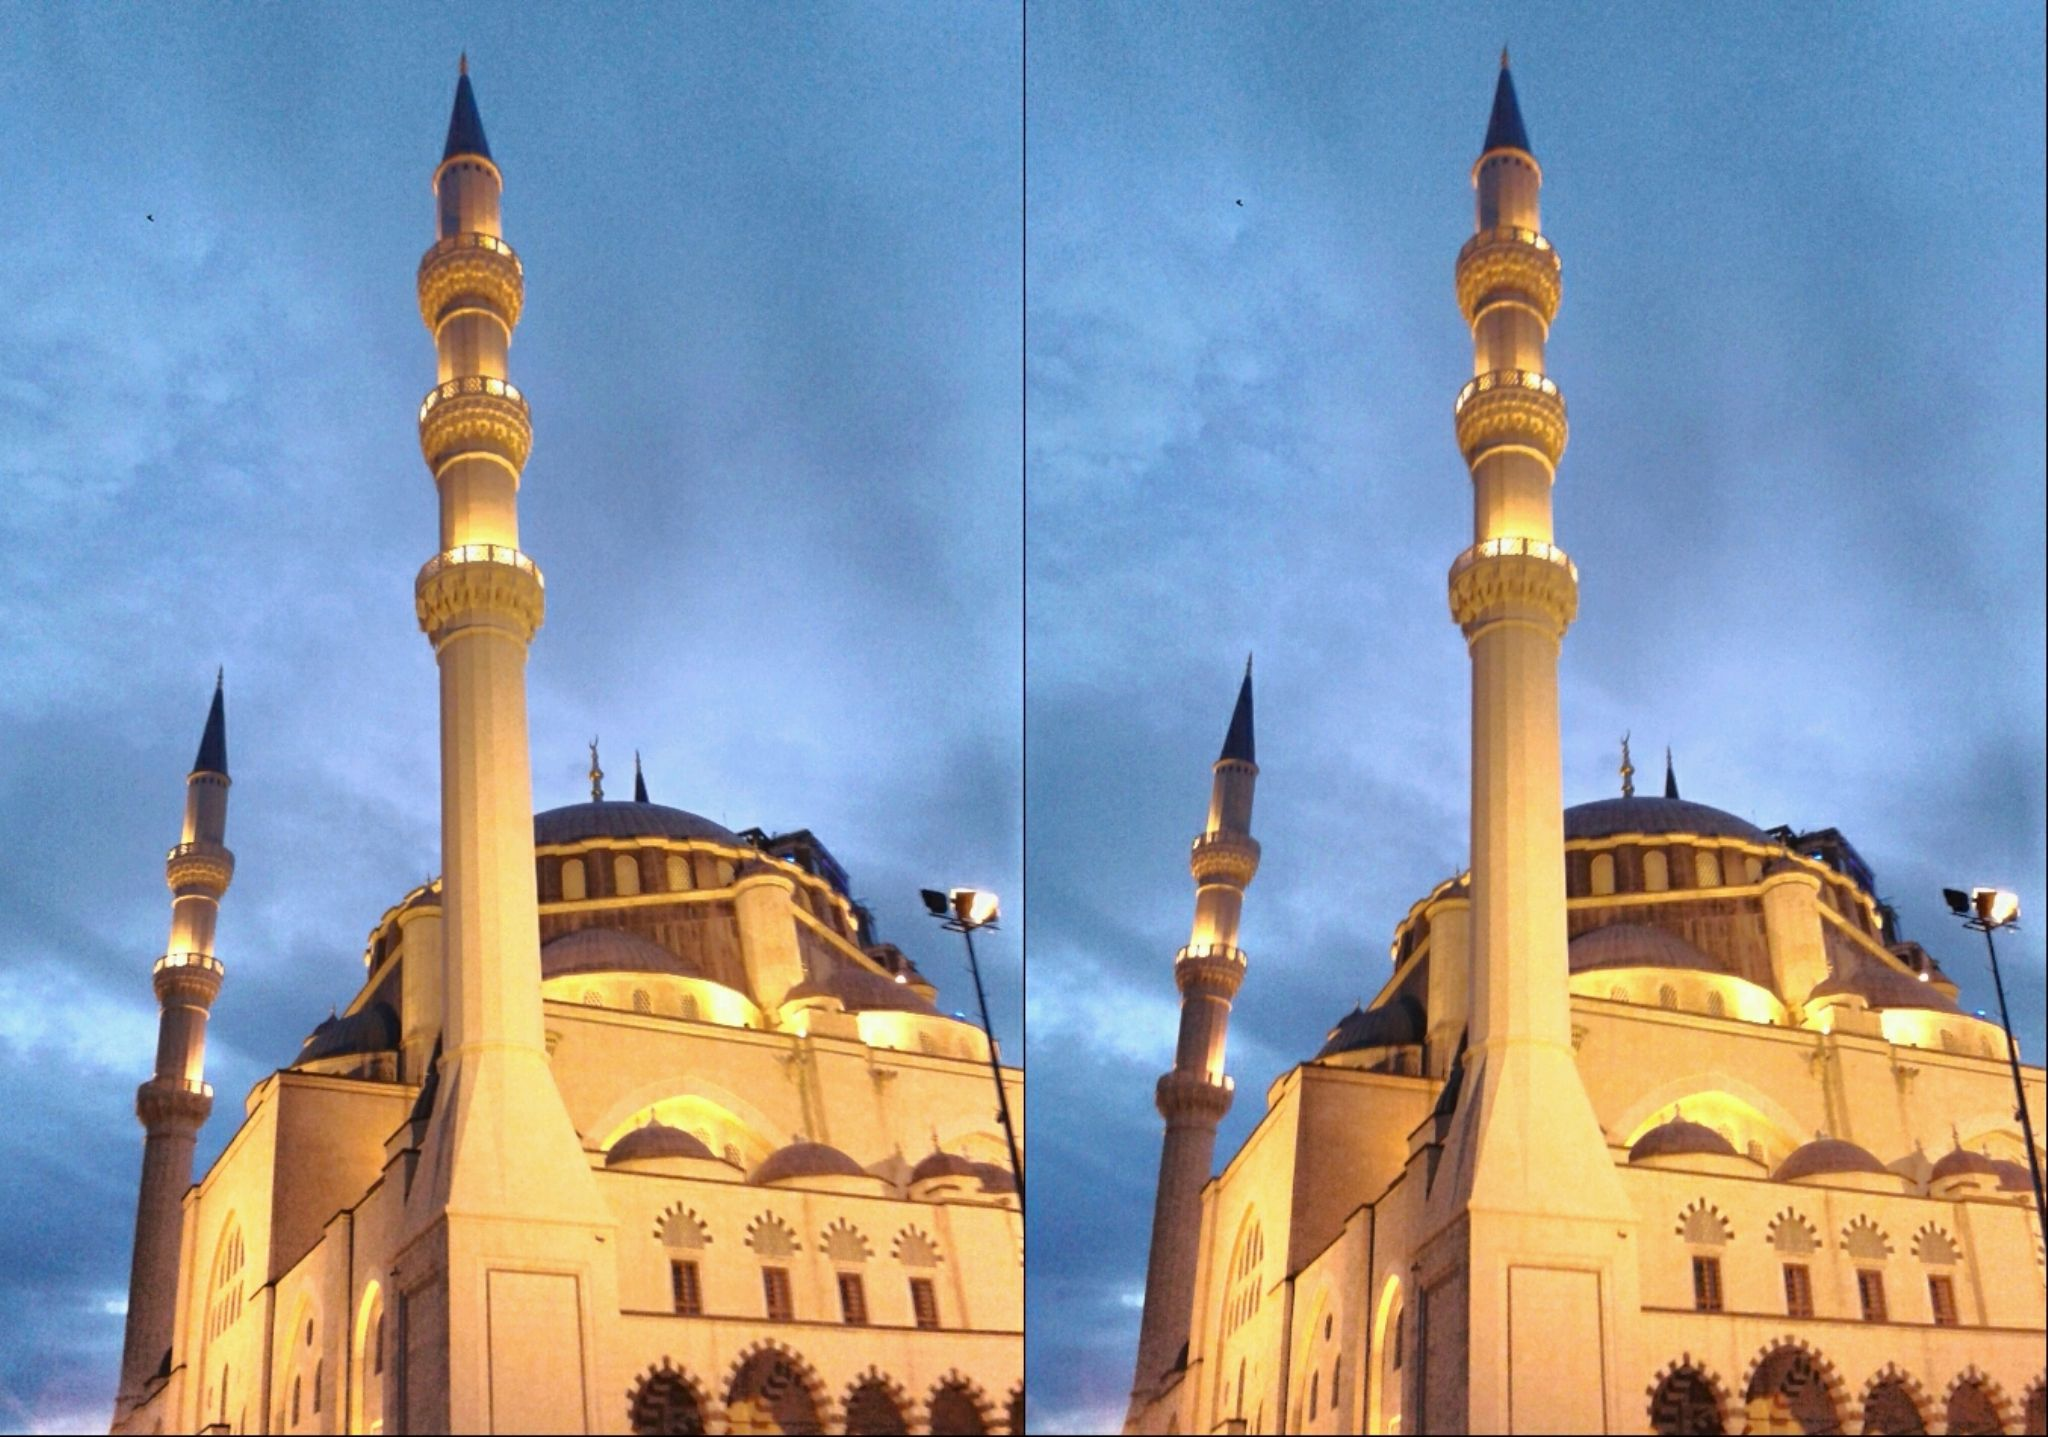 MIMAR SINAN MOSQUE - ATASEHIR - ASIAN SIDE OF ISTANBUL 21.09.2014 by Istanbul 3D Photography